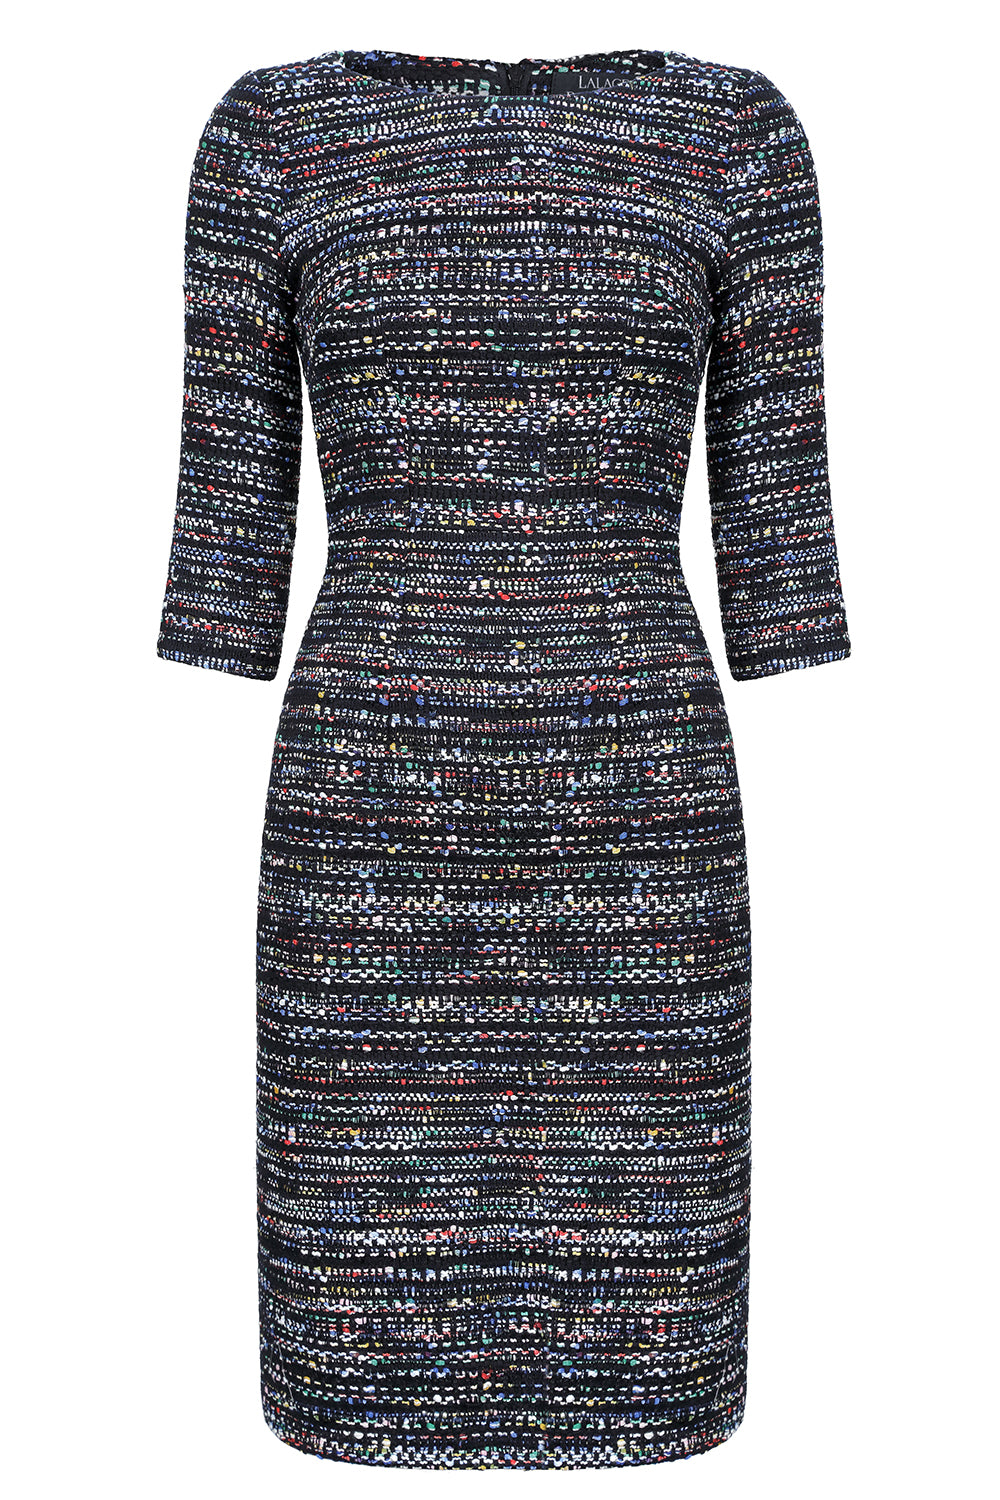 6472cf843e7 Black and multi-coloured tweed mother of the bride dress with 3 4 sleeves.  womens designer tweed business dress. womens designer tweed business dress